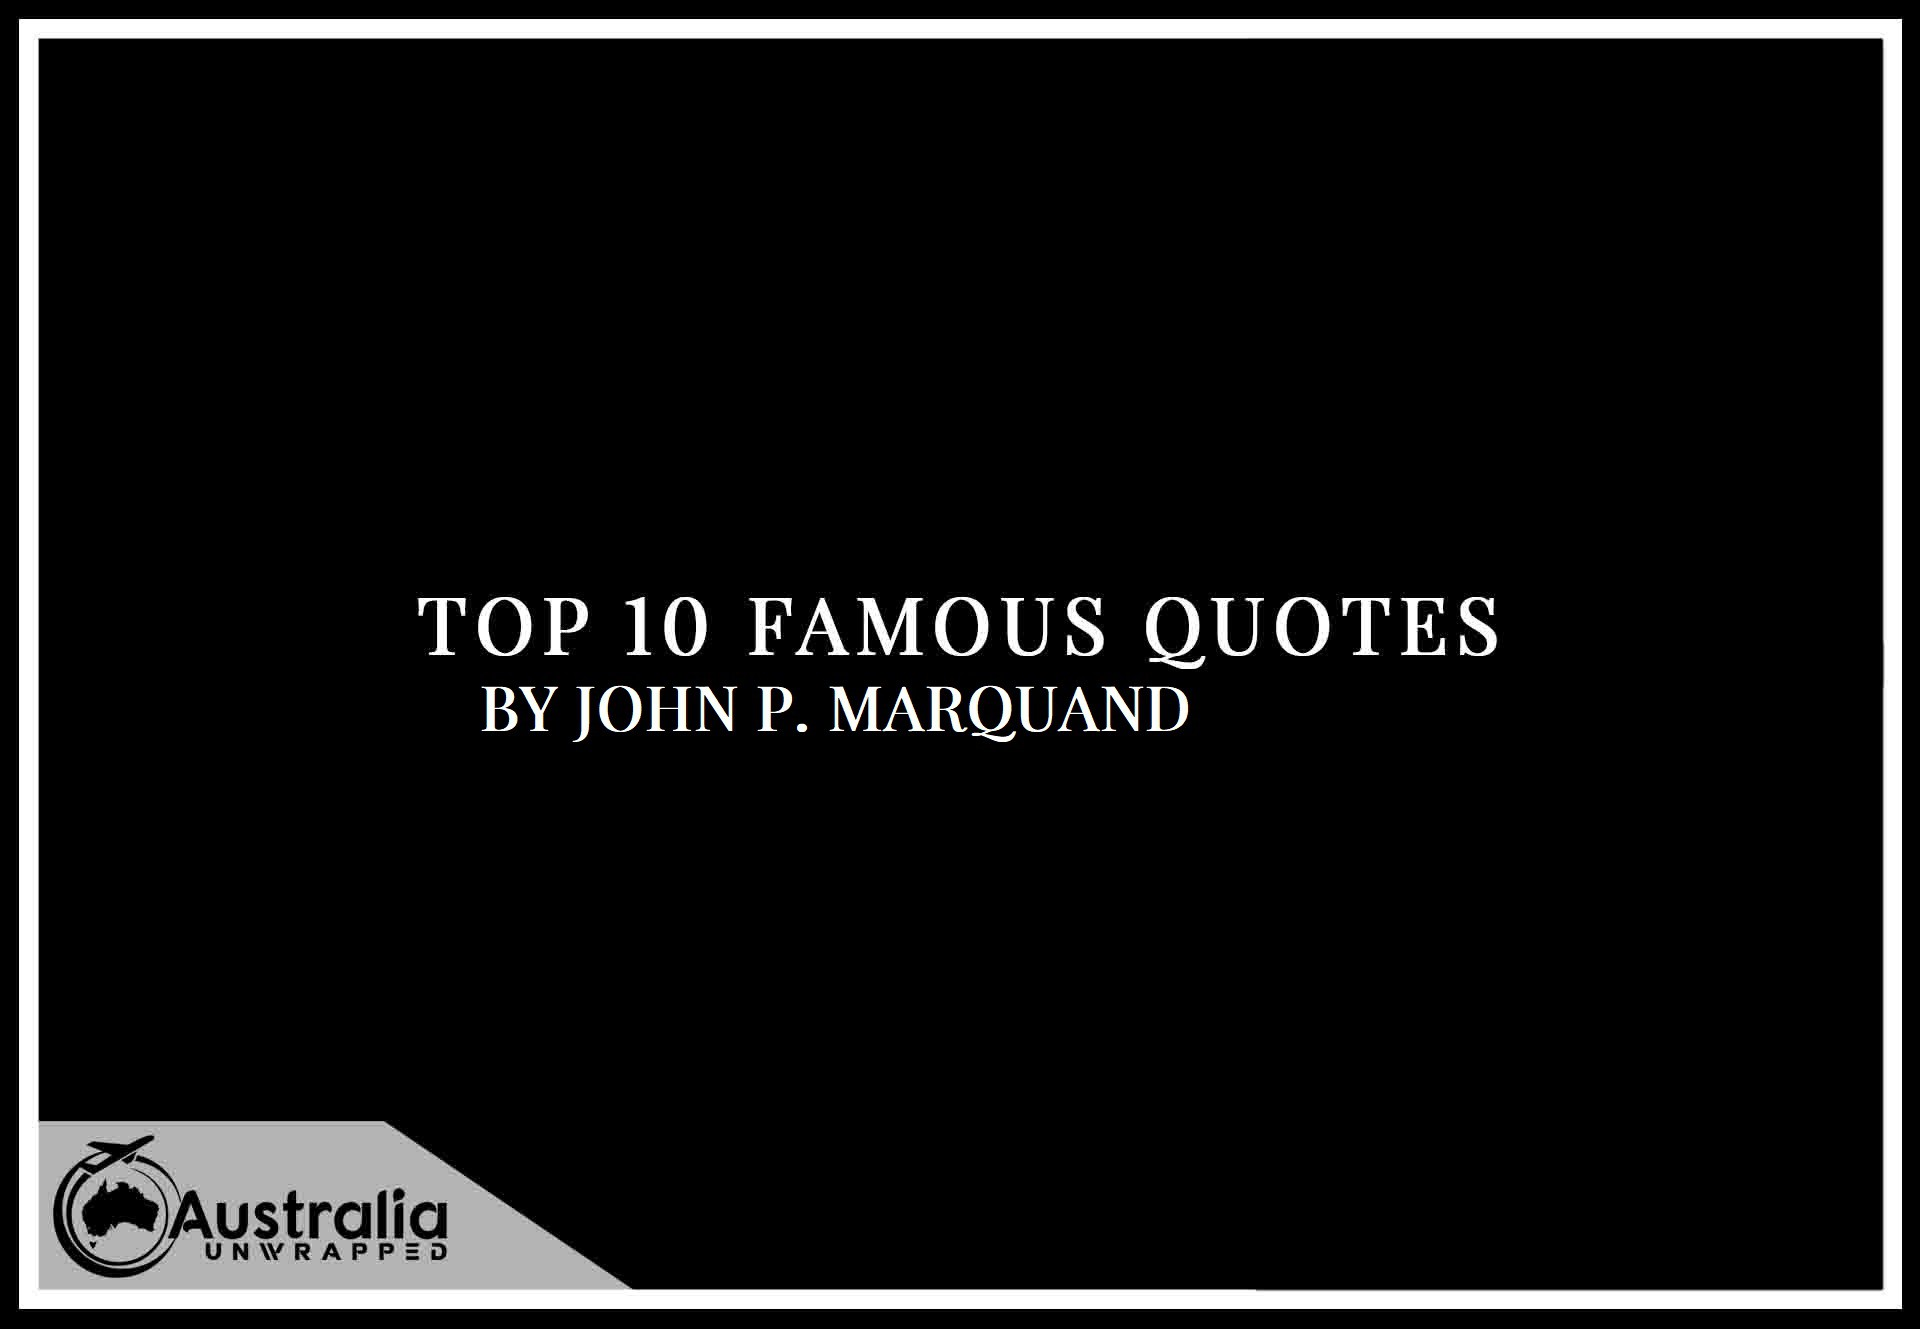 Top 10 Famous Quotes by Author John P. Marquand